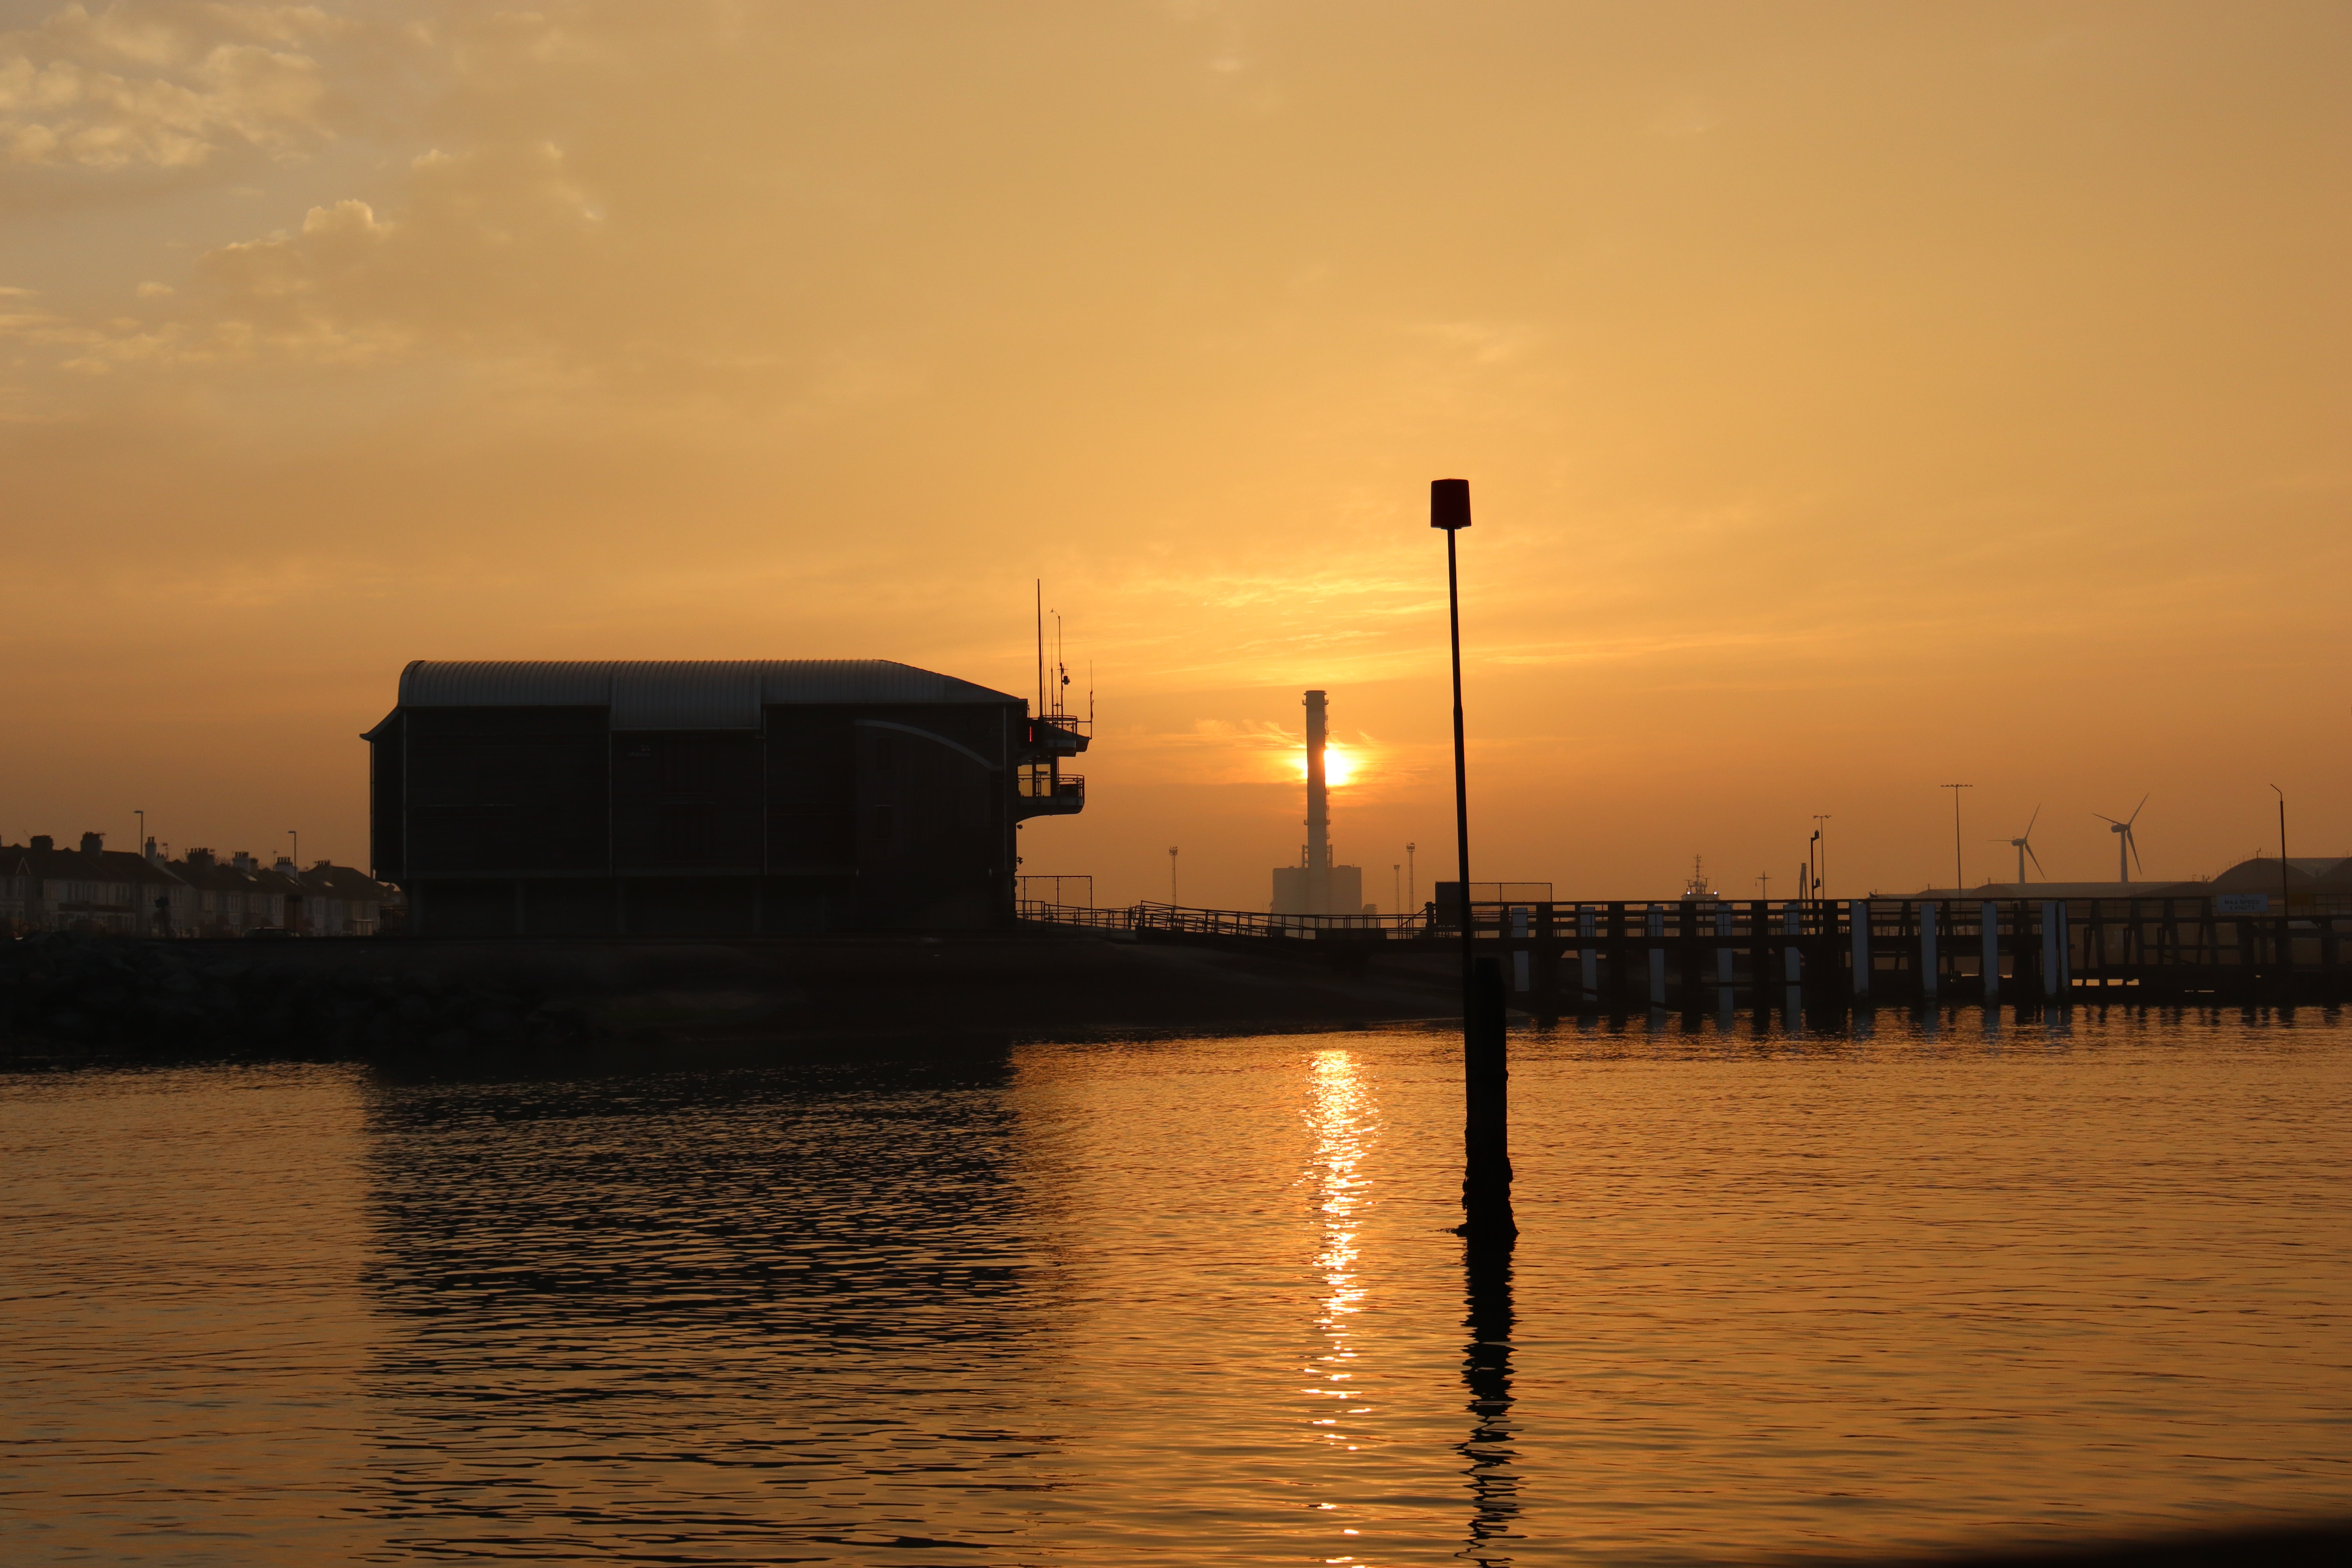 Sun rising behind Shoreham power station and Shoreham lifeboat station. The sunrise is reflecting off the sea below.